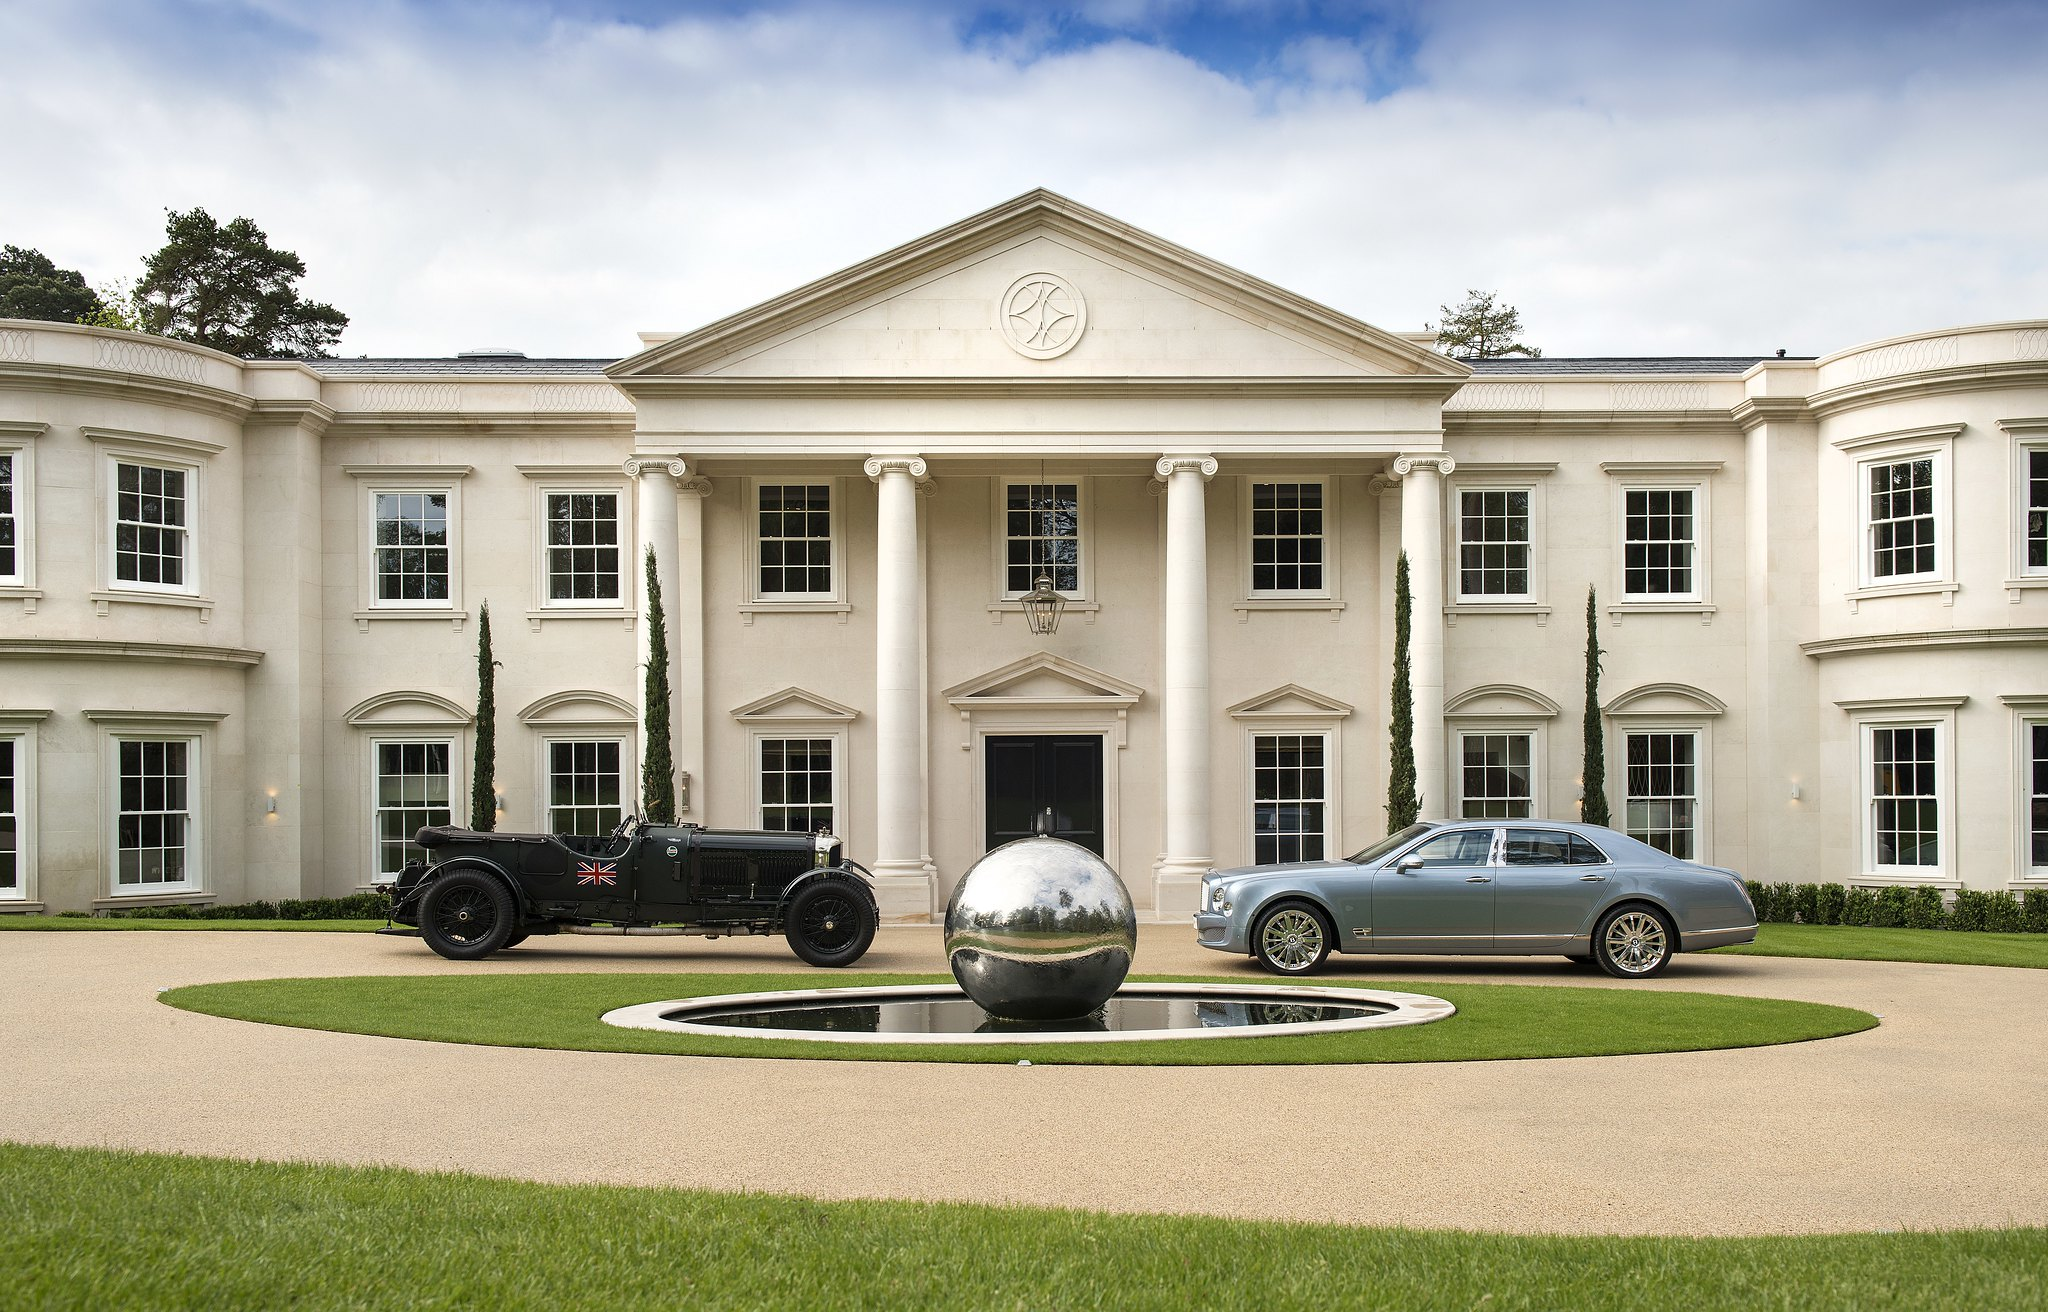 dawn-hill-wentworth-estate-our-work-private-clients-ascot-design-view1.jpg